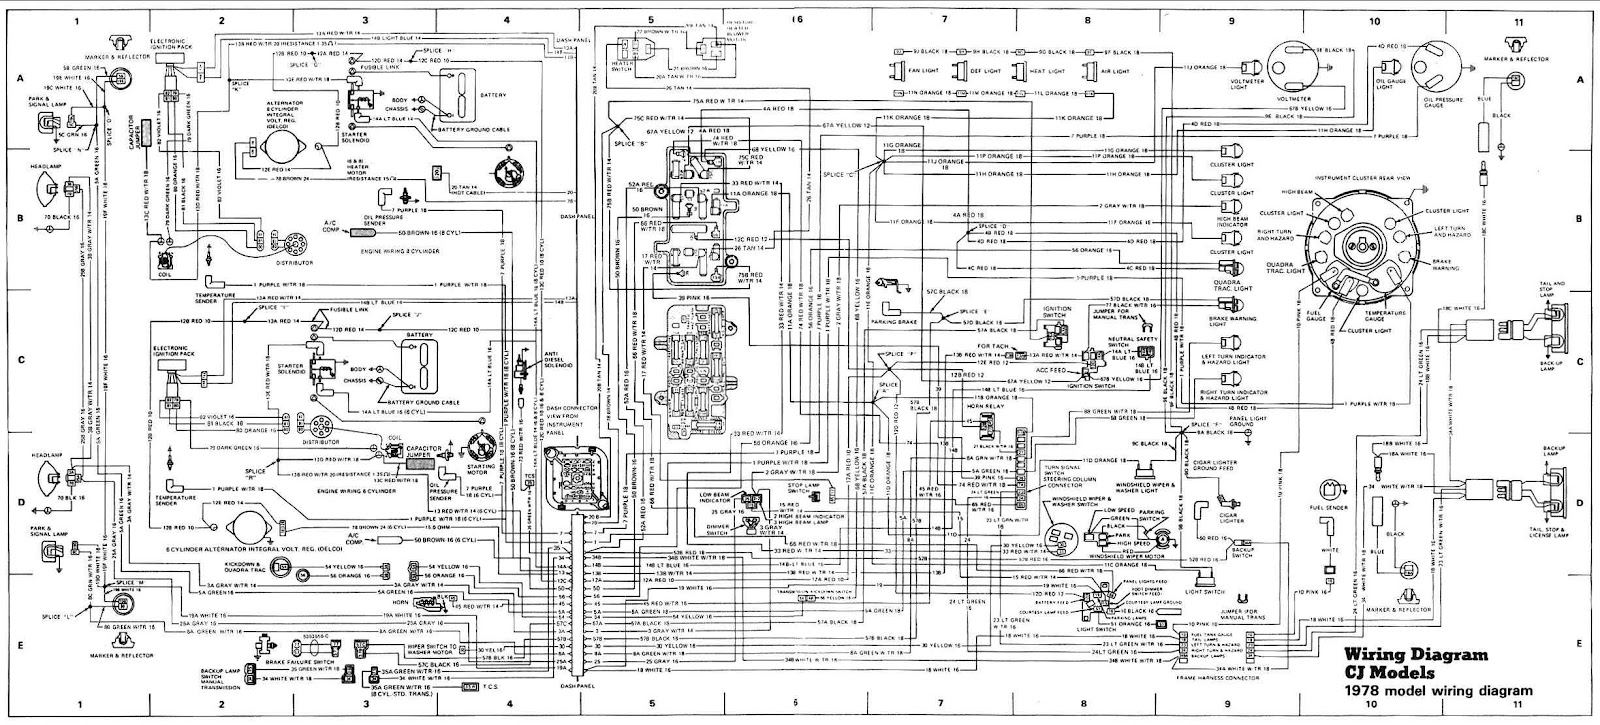 Jeep+CJ+Models+1978+Complete+Electrical+Wiring+Diagram wiring diagrams \u2022 j squared co sc18g wiring diagram at couponss.co